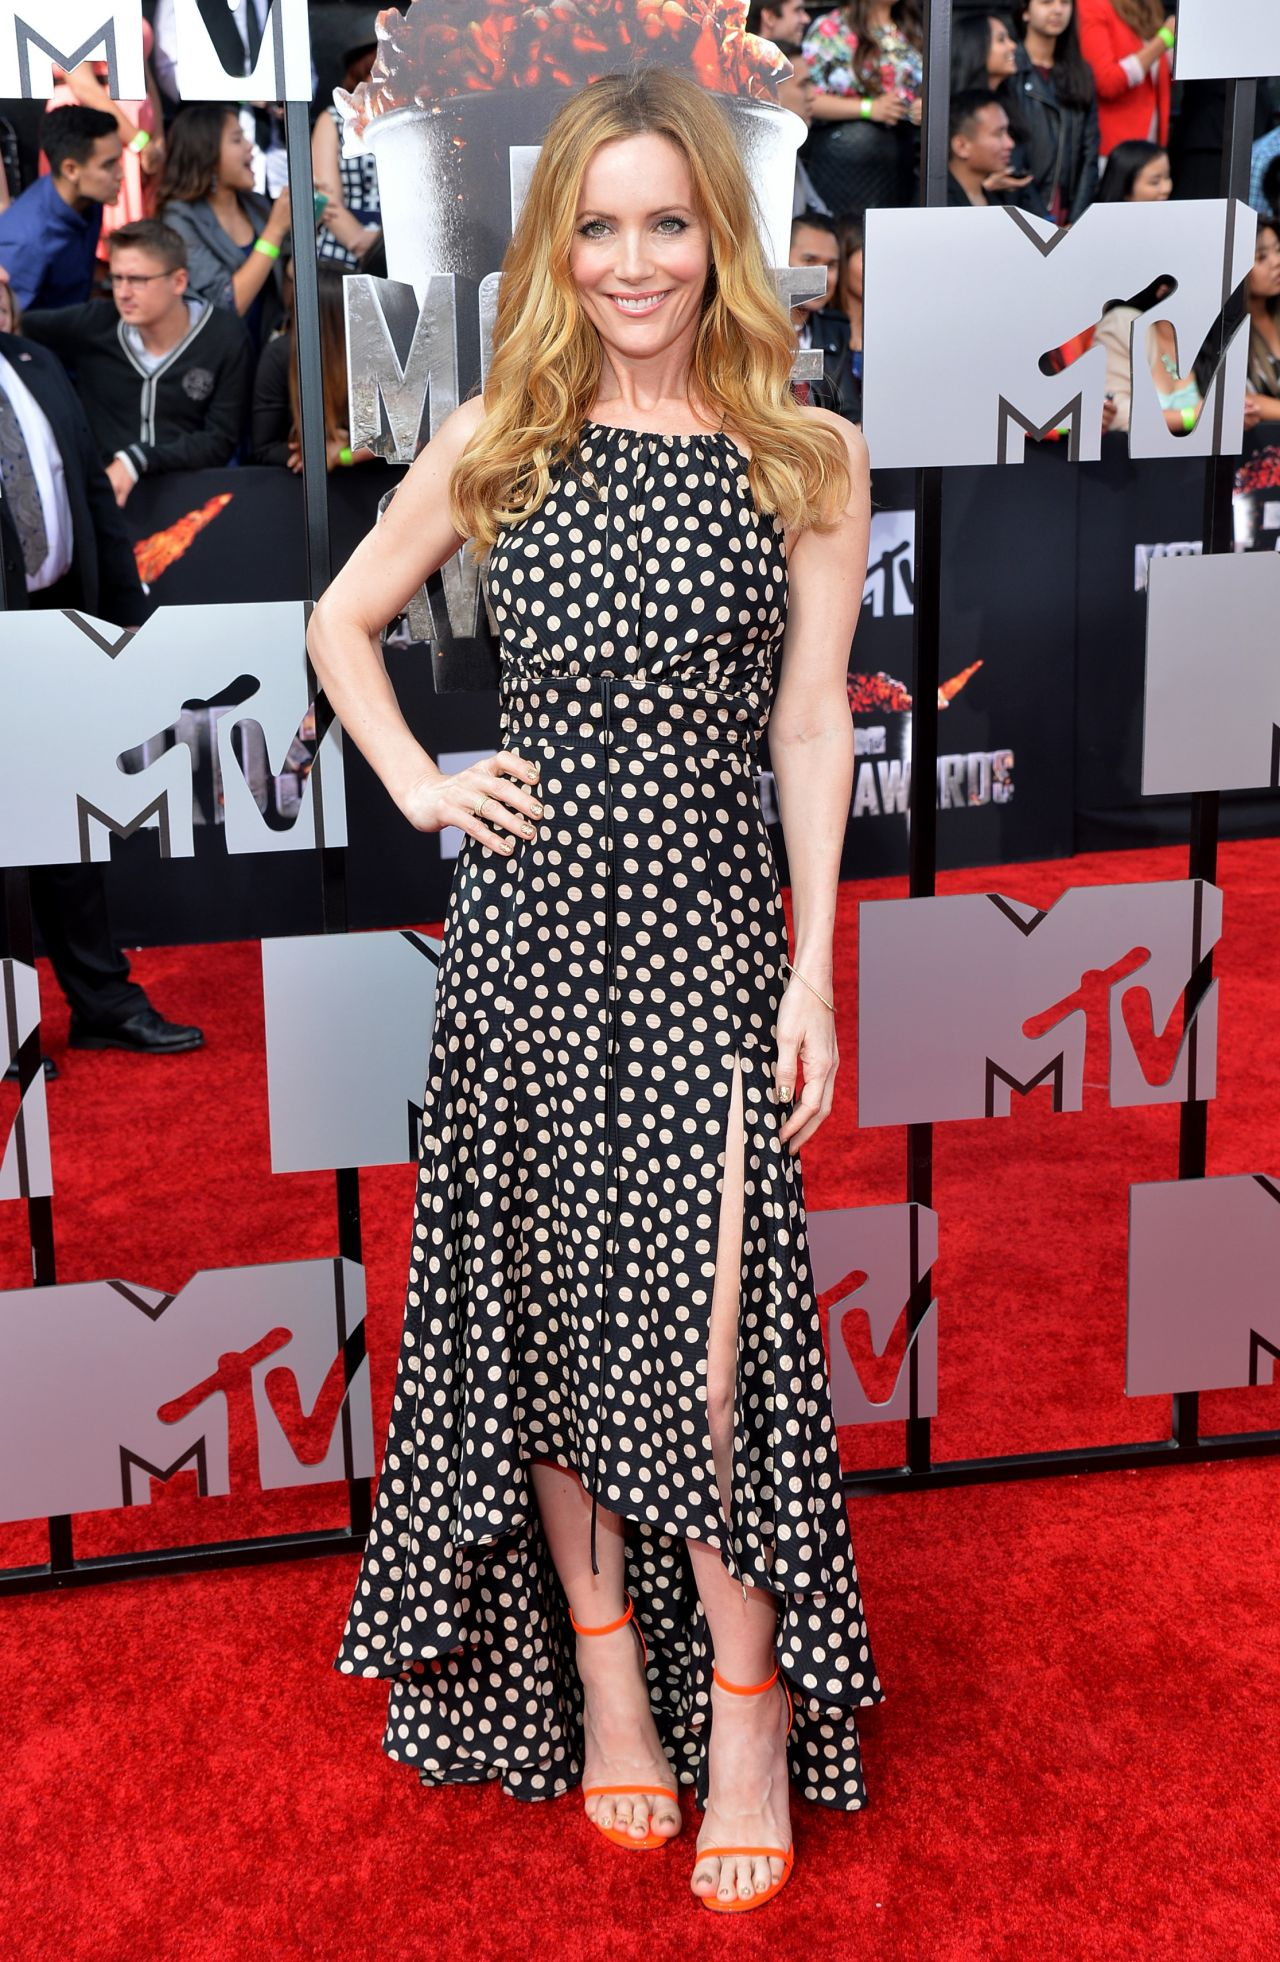 Leslie Mann in Juan Carlos Obando Chiffon Dress - 2014 MTV Movie Awards